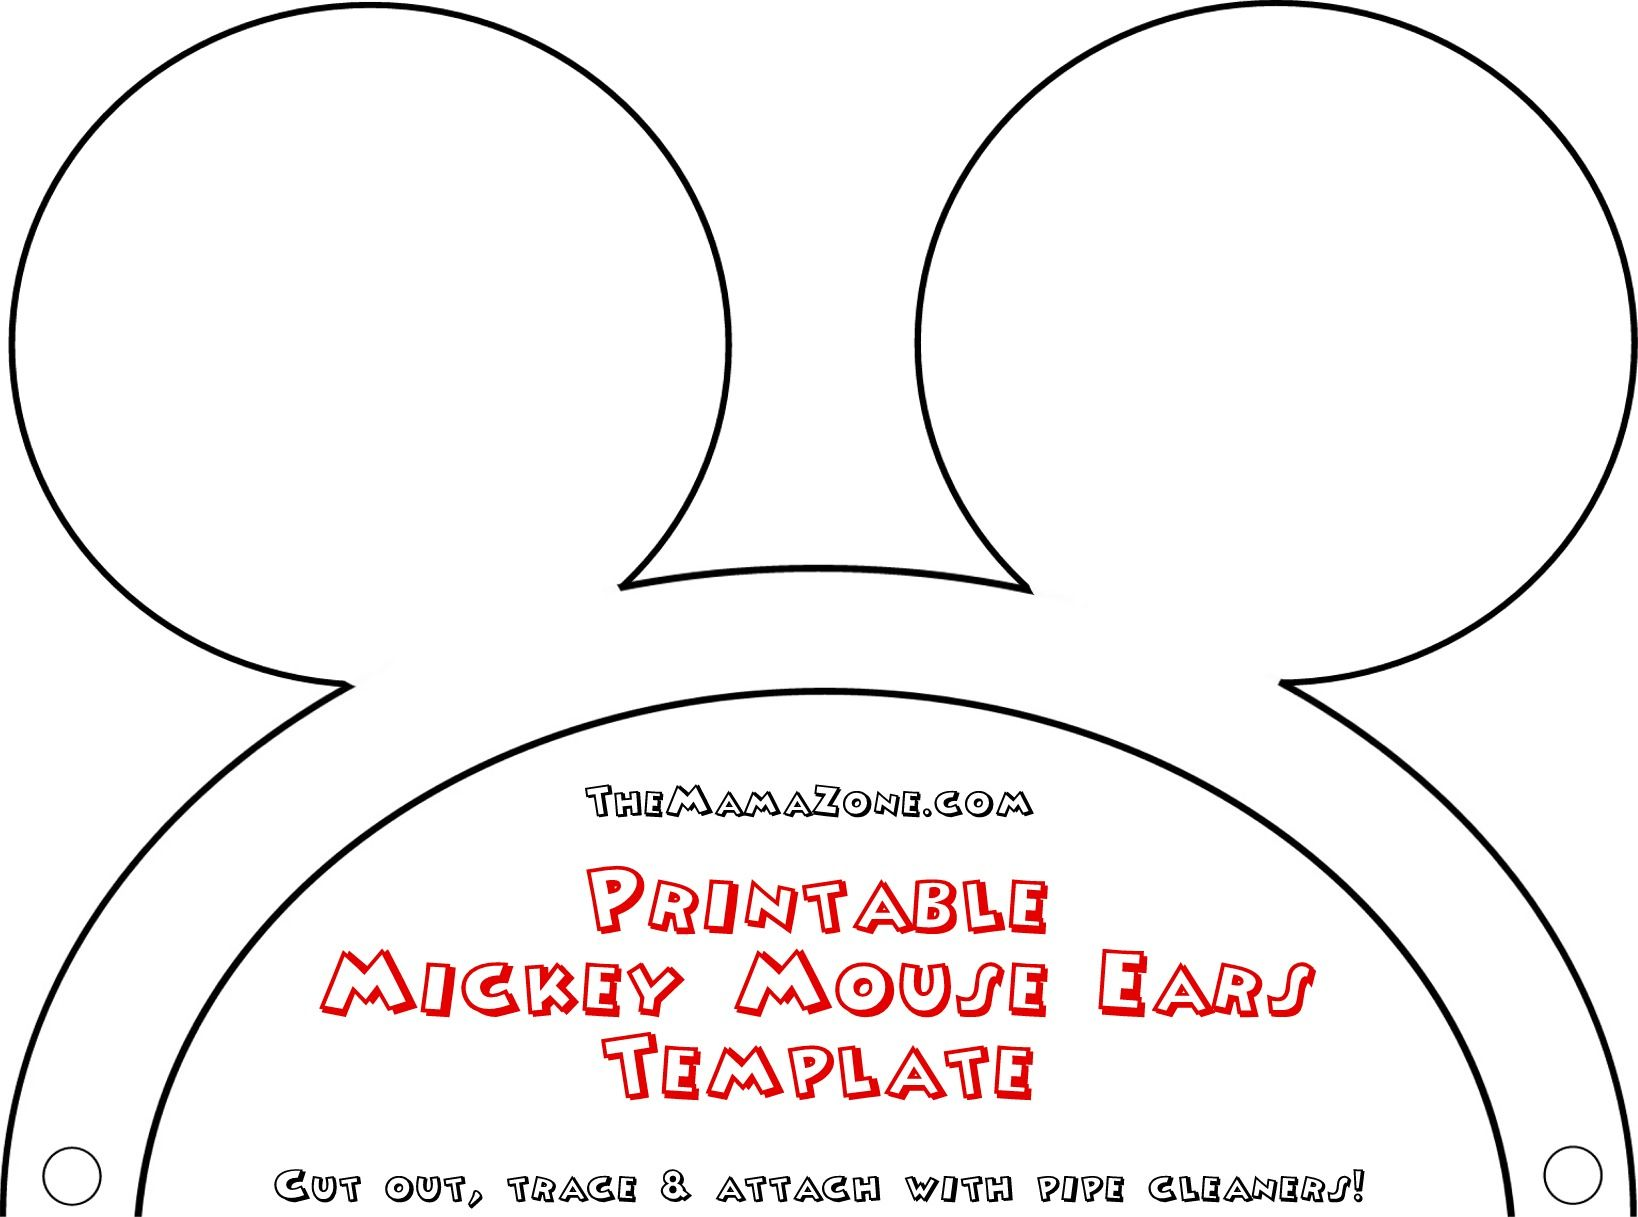 Free mickey mouse ears template mickey mouse ears mickey mouse click here to open the printable mickey mouse ear template it will open in a pronofoot35fo Gallery